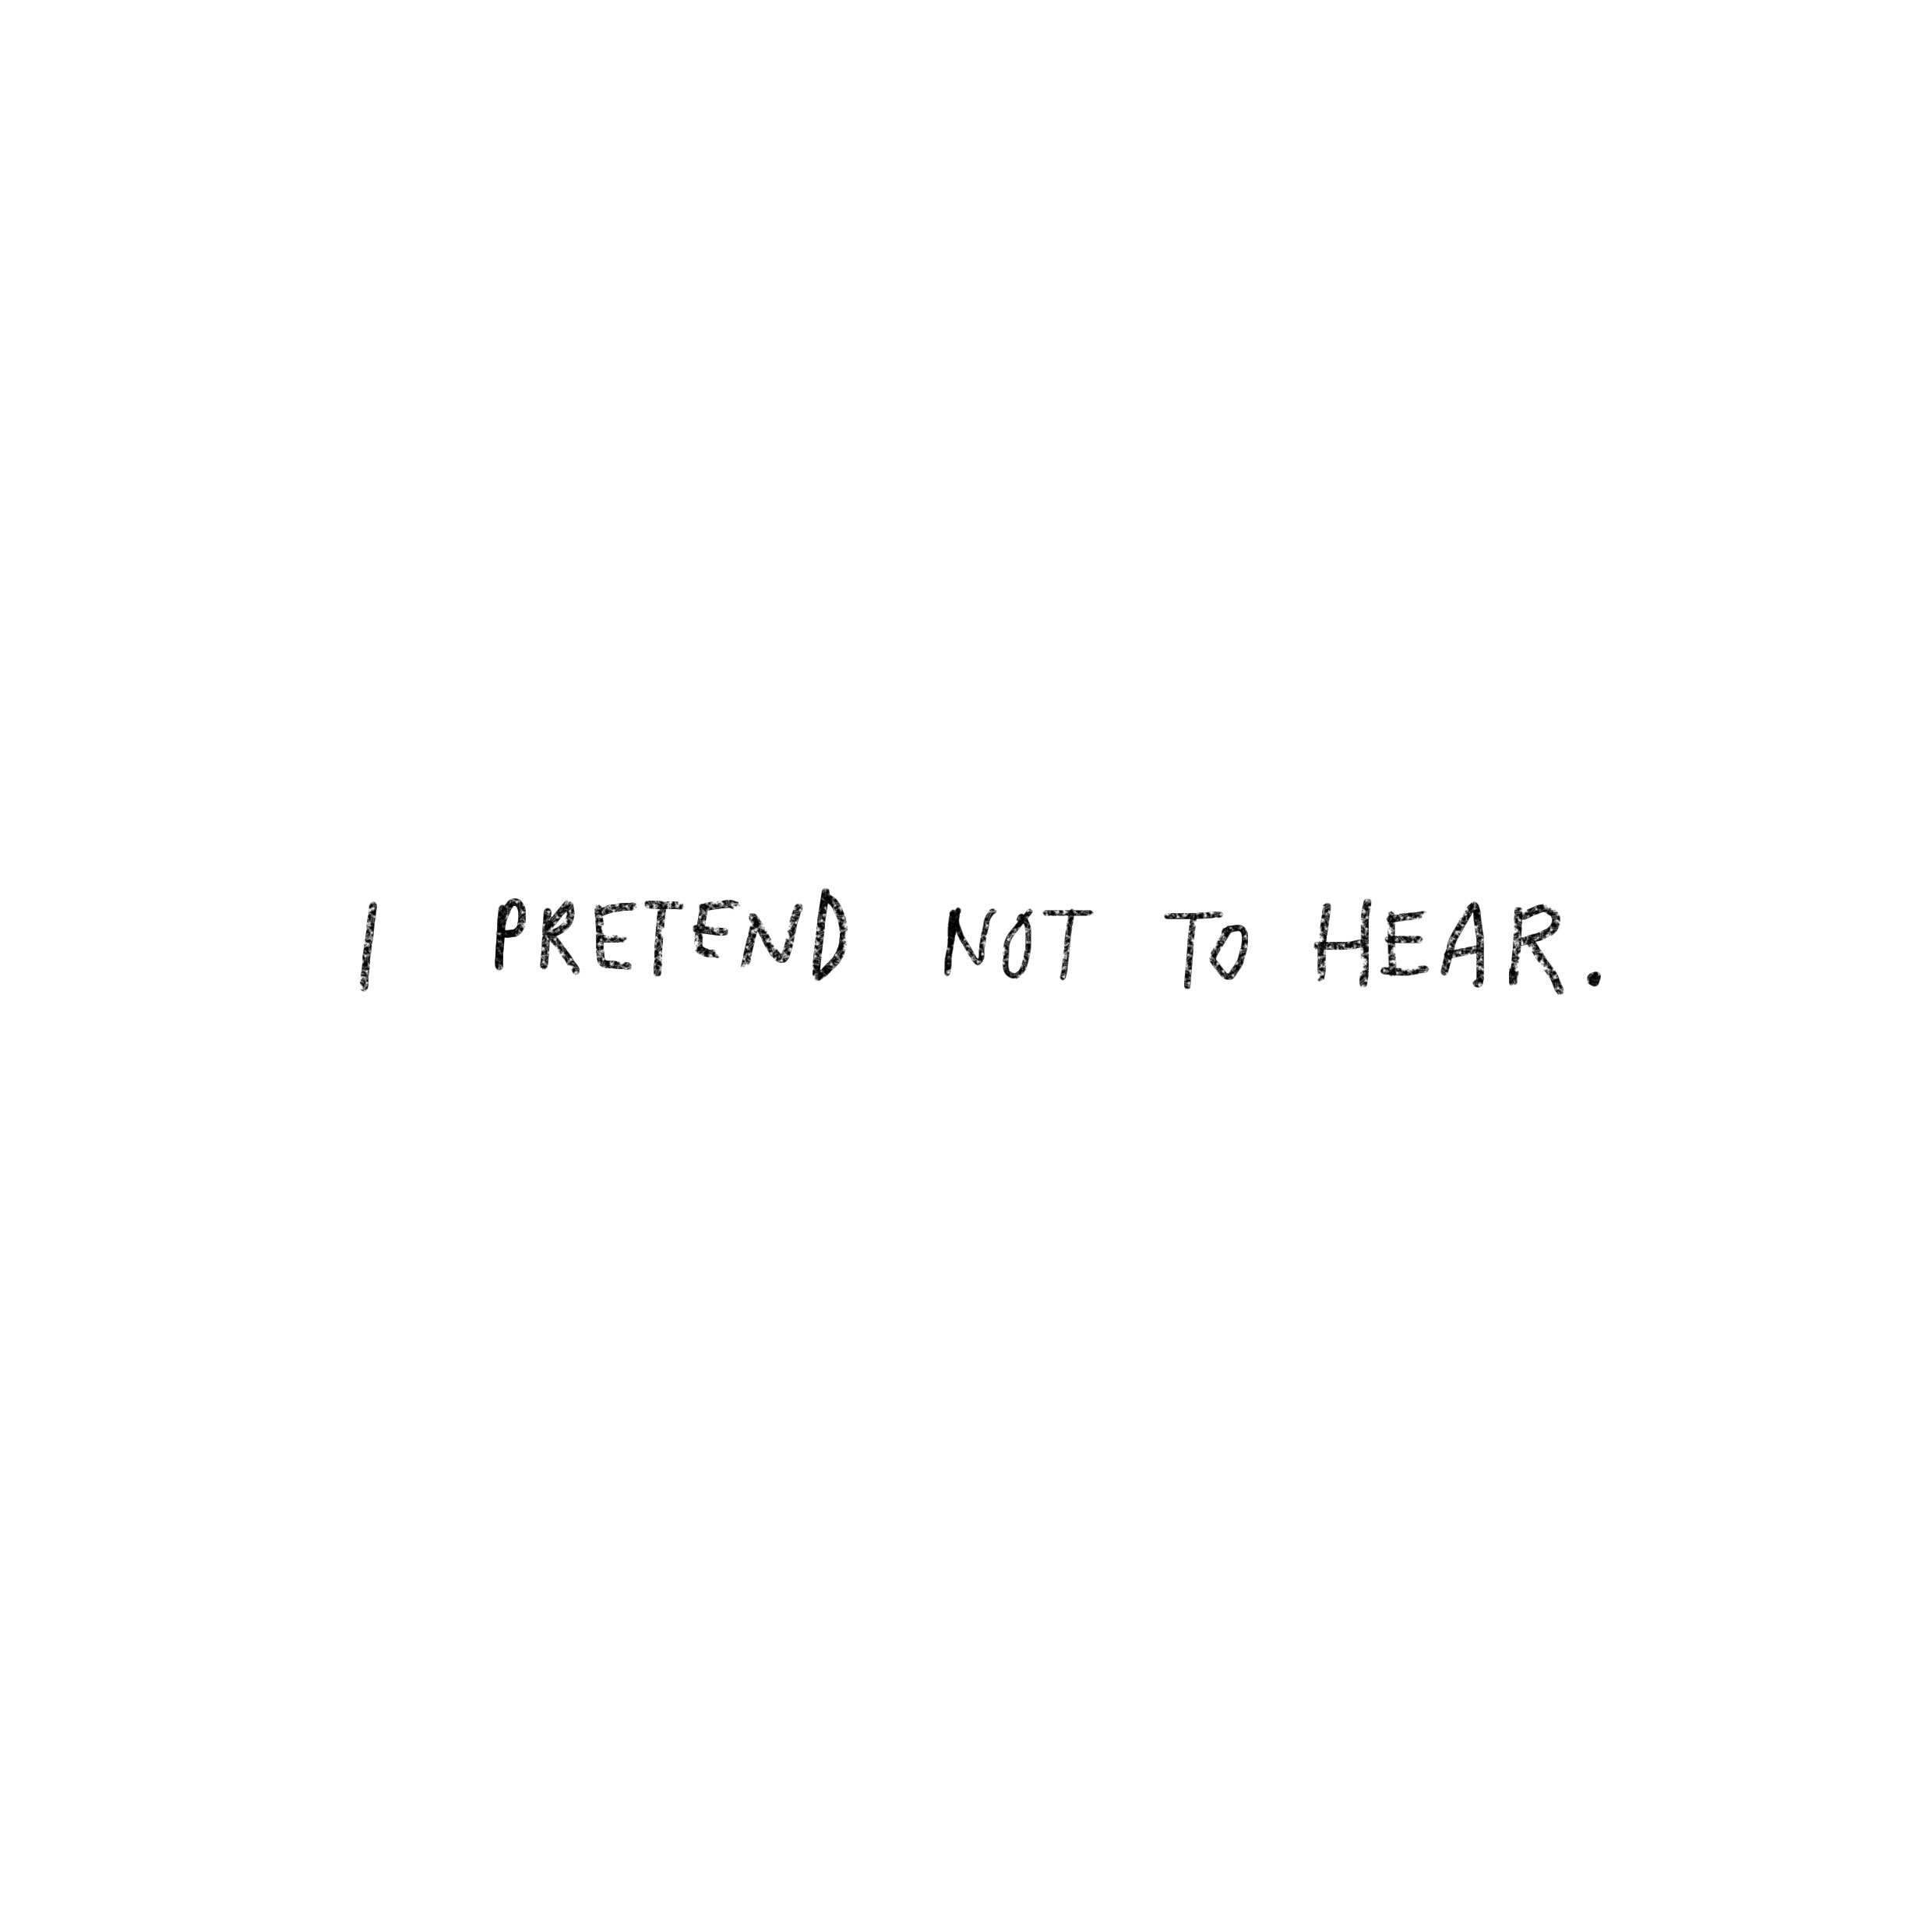 'I pretend not to hear.'